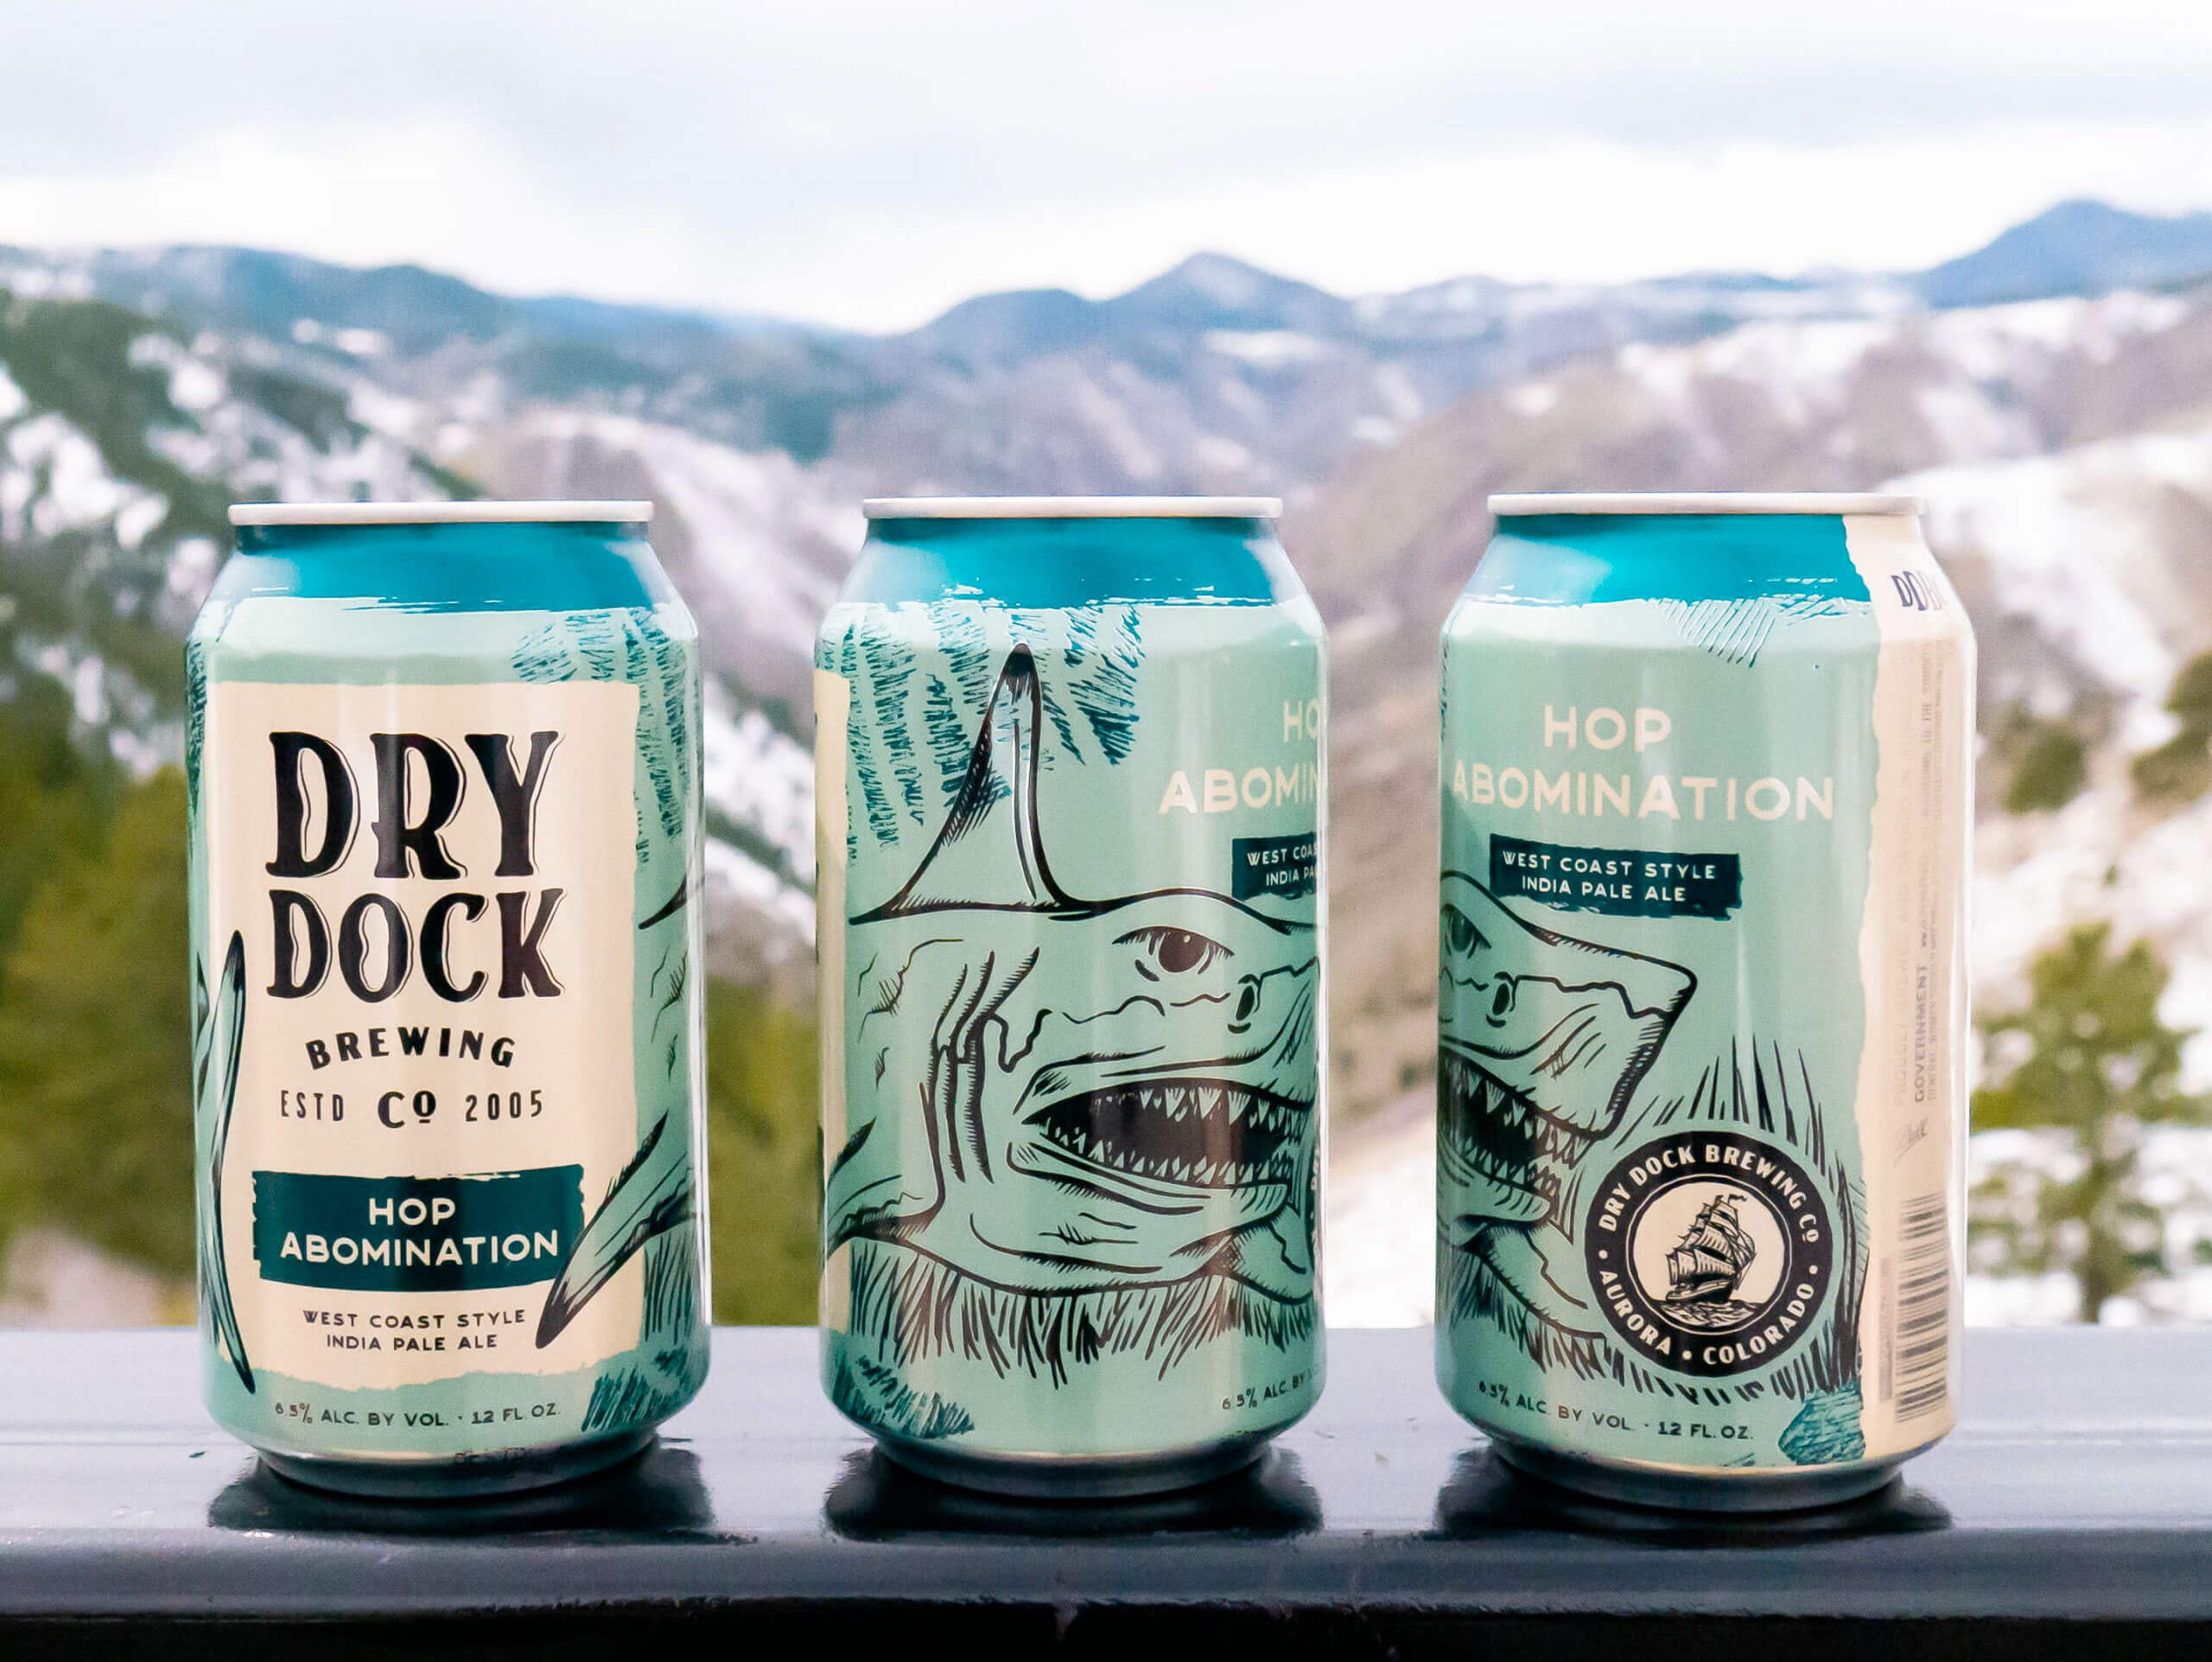 Redesigned cans of the Hop Abomination by Dry Dock Brewing Company